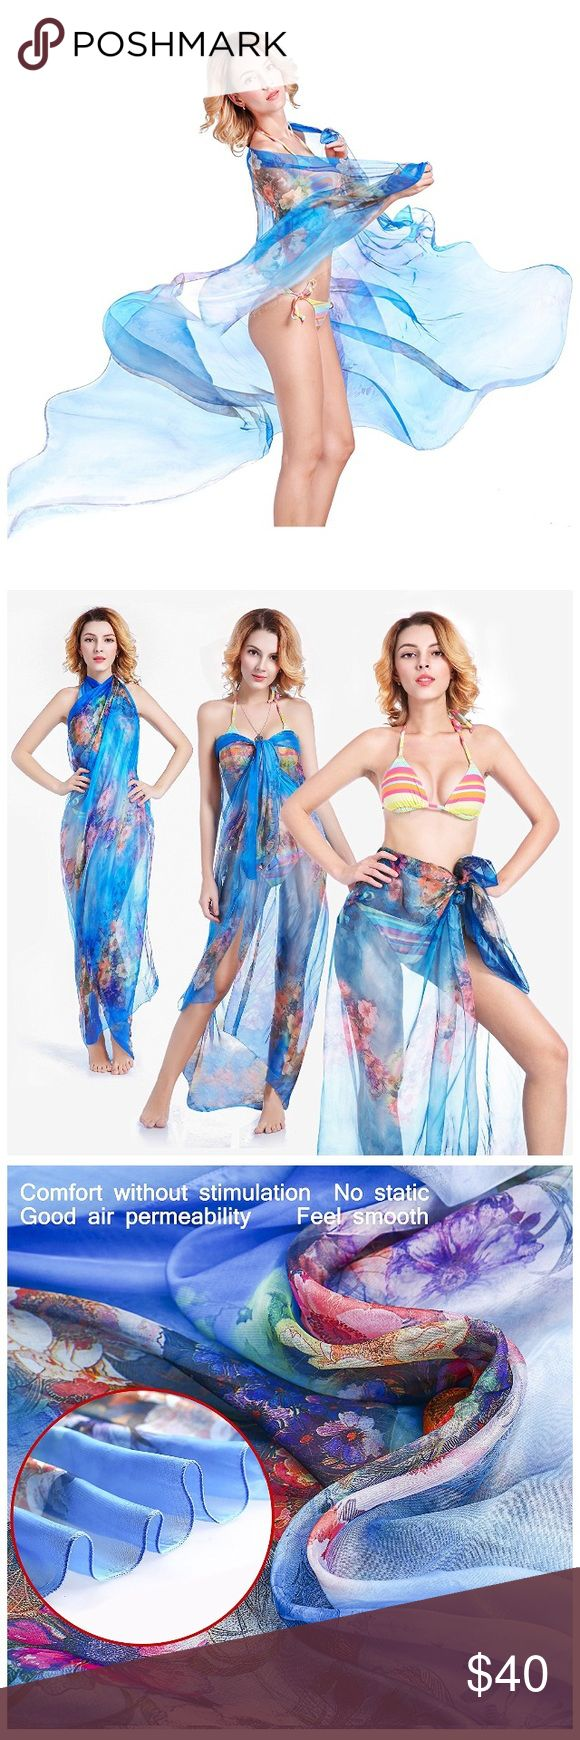 Sarong Skirt Beach Wrap in Blue Floral Sarong Skirt Beach Wrap in Blue Floral. 100% Chiffon Silk. ONE SIZE FITS ALL: Measures 70 x 60 inches. Perfect for body sizes from petite to plus. Swim Sarongs